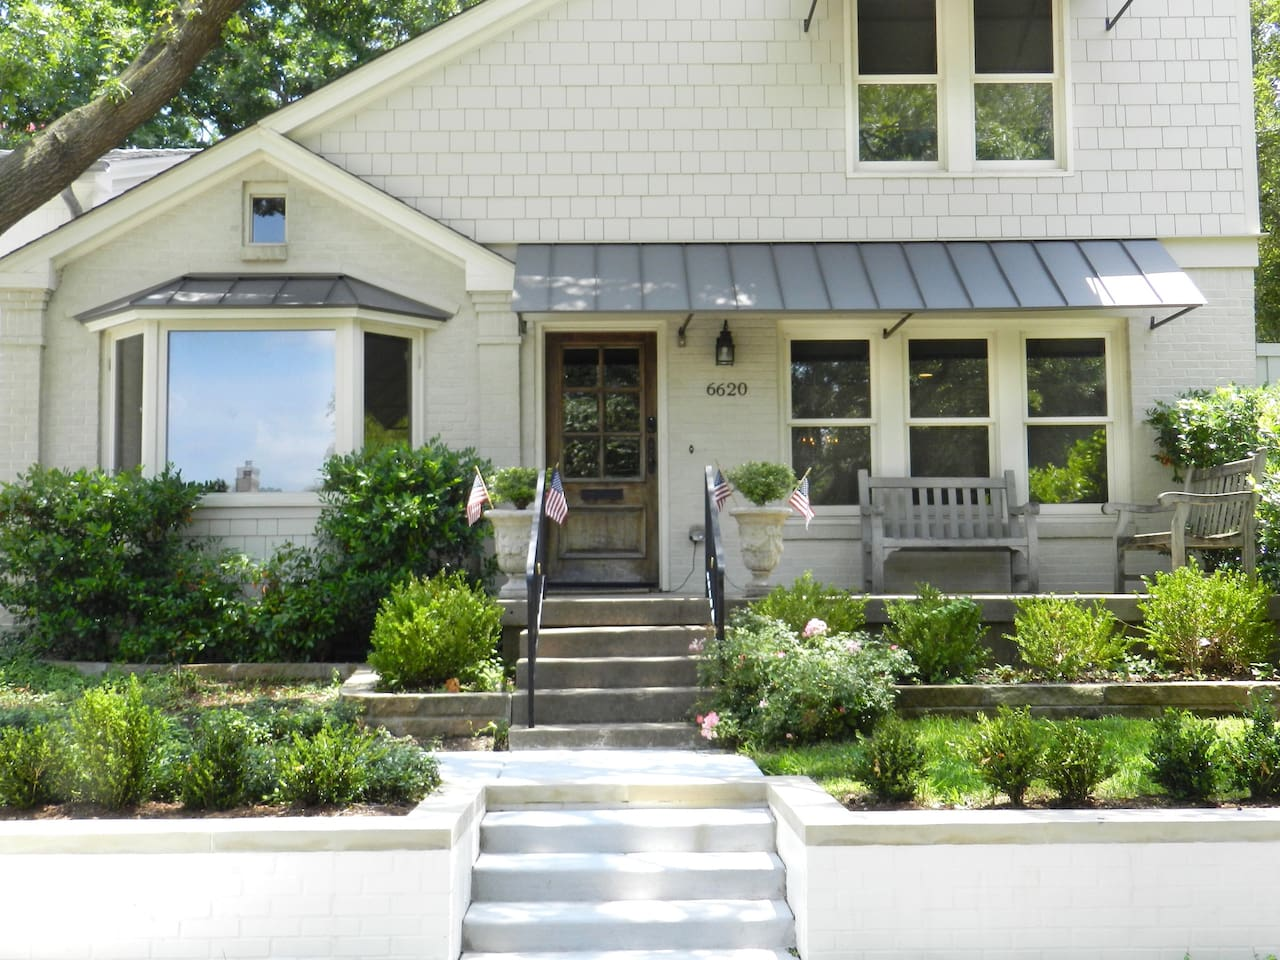 Welcome to the Cottage! Beautifully landscaped with an inviting front porch with seating.